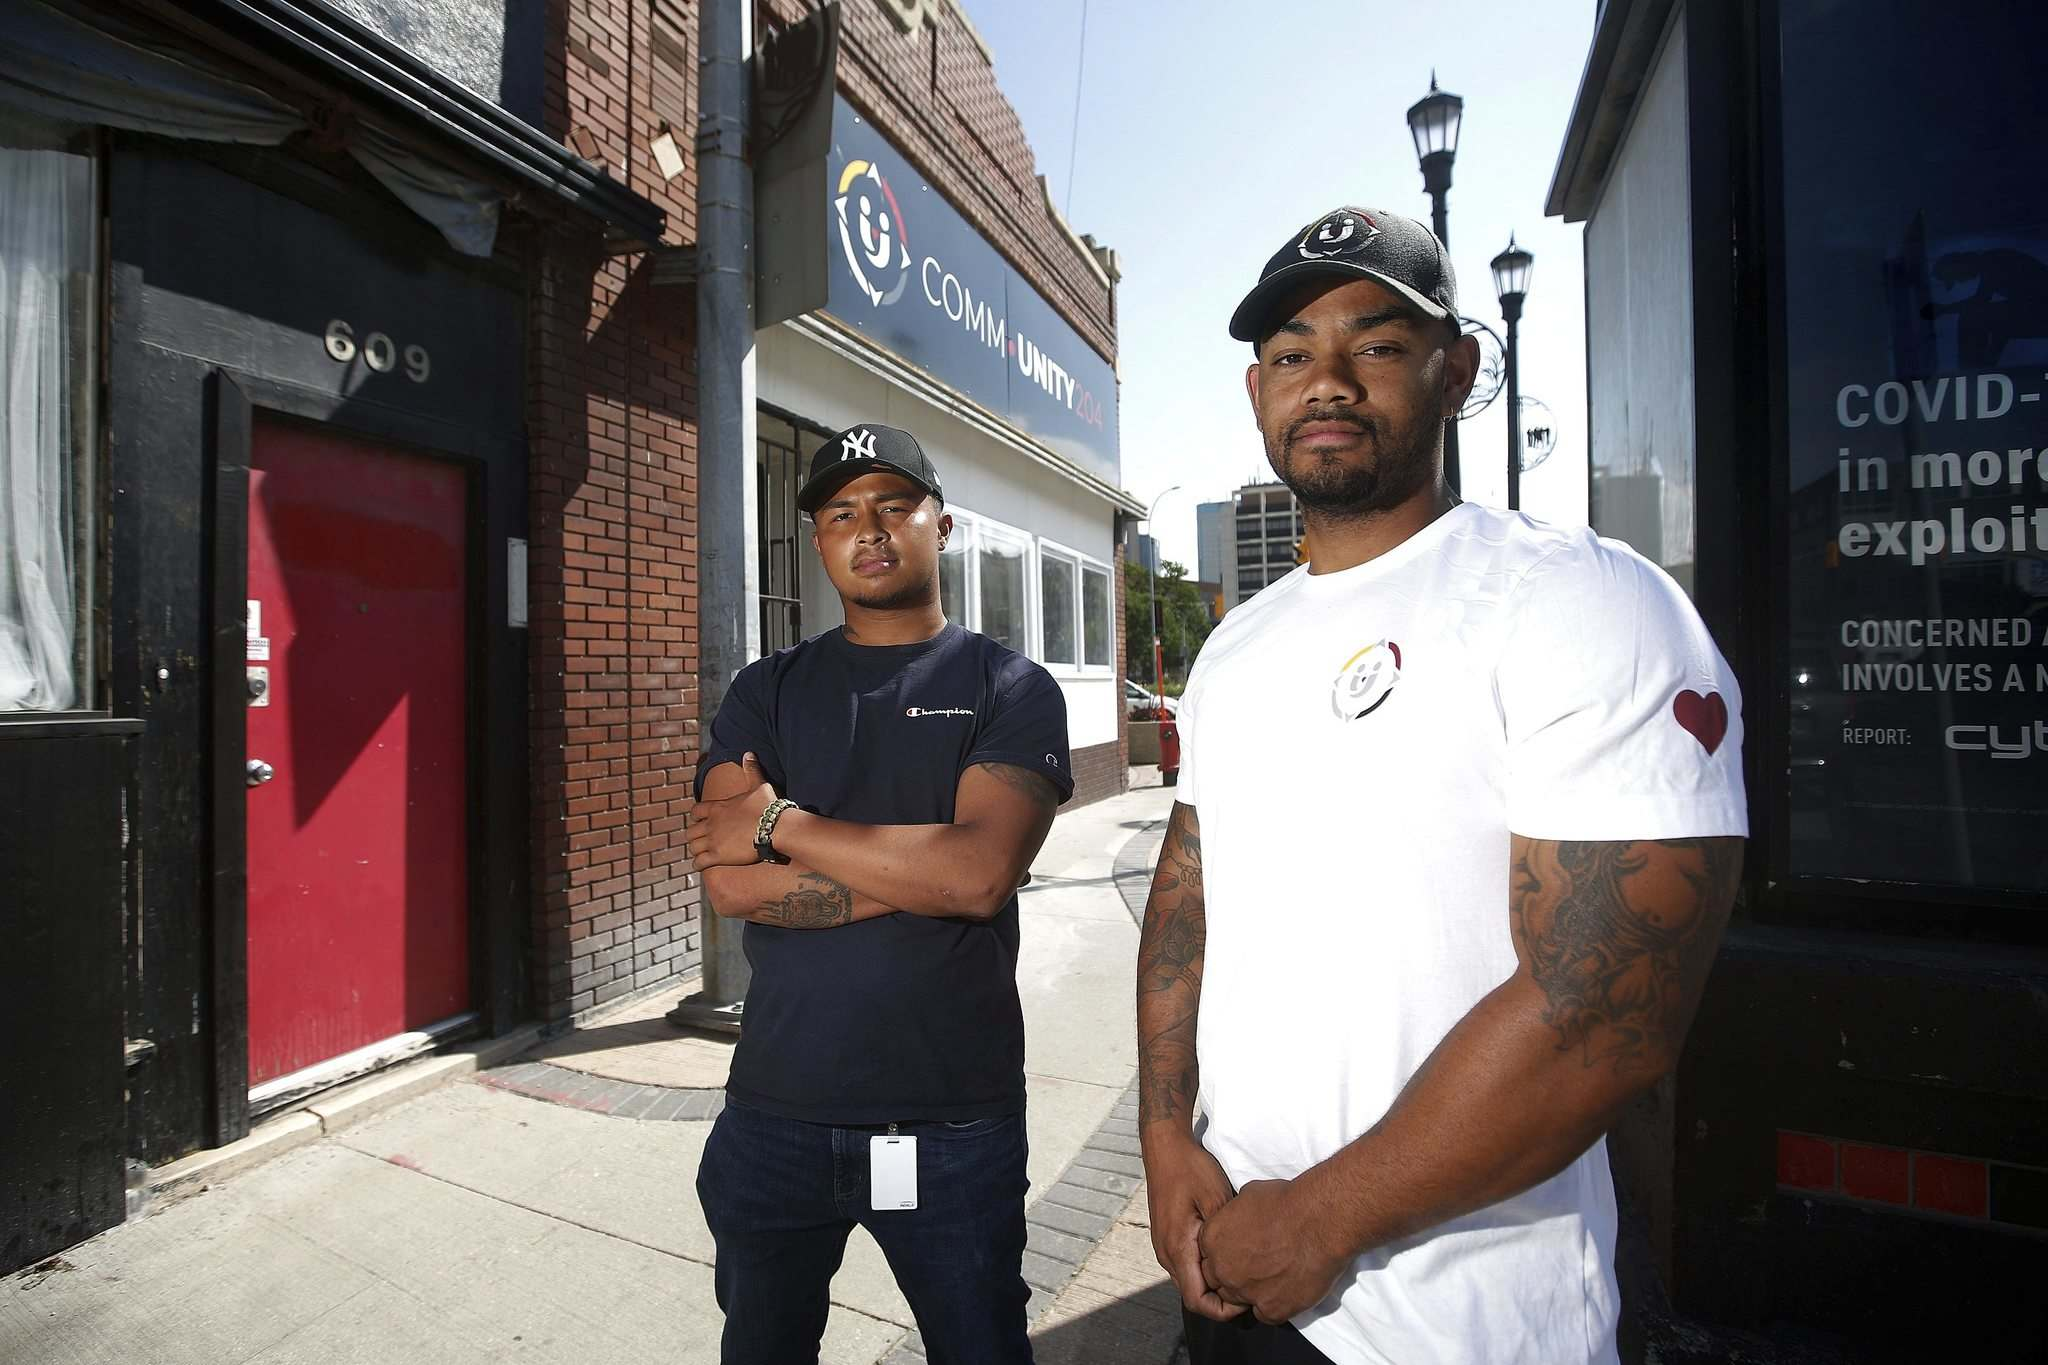 Rylee Nepinak (left) of Anishiative, and Daniel Hidalgo of CommUNITY204, which are volunteer groups, see value in diversifying the Winnipeg Police Service, but maintain structural change to the service's internal culture will be necessary to garner trust between police and marginalized communities. (John Woods / Winnipeg Free Press)</p></p>